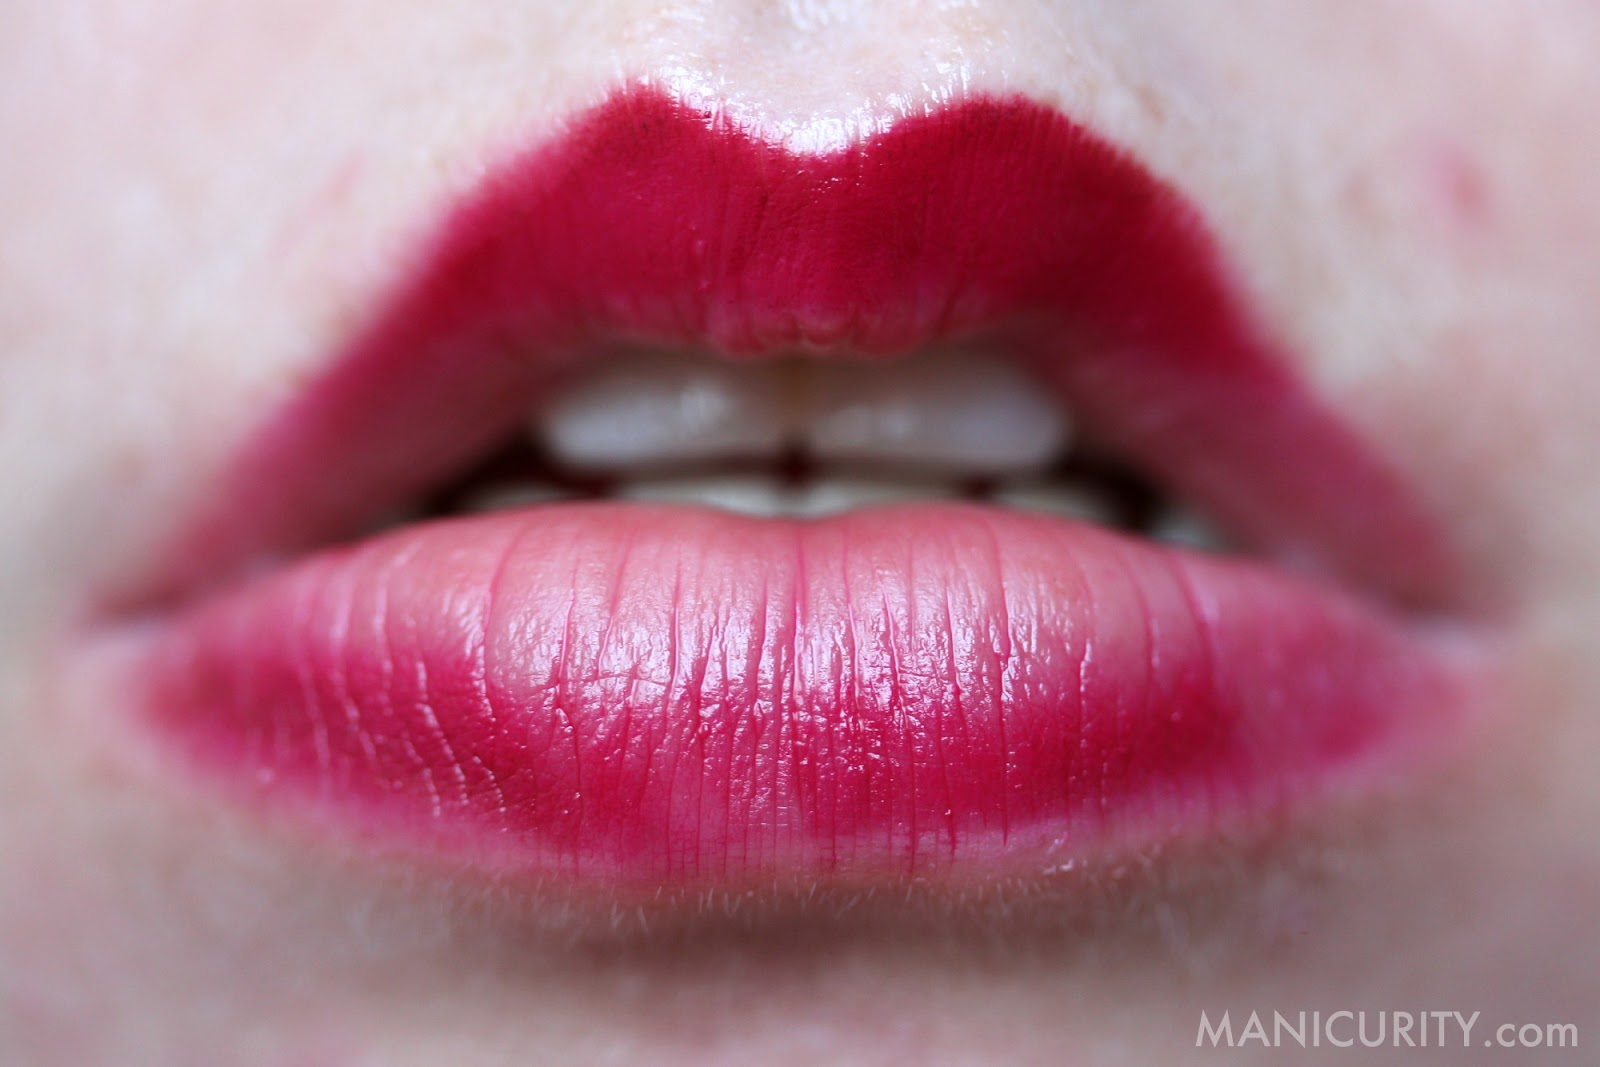 Rimmel Moisture Renew Lipstick 360 As You Want Victoria - Swatches & Review | Manicurity.com